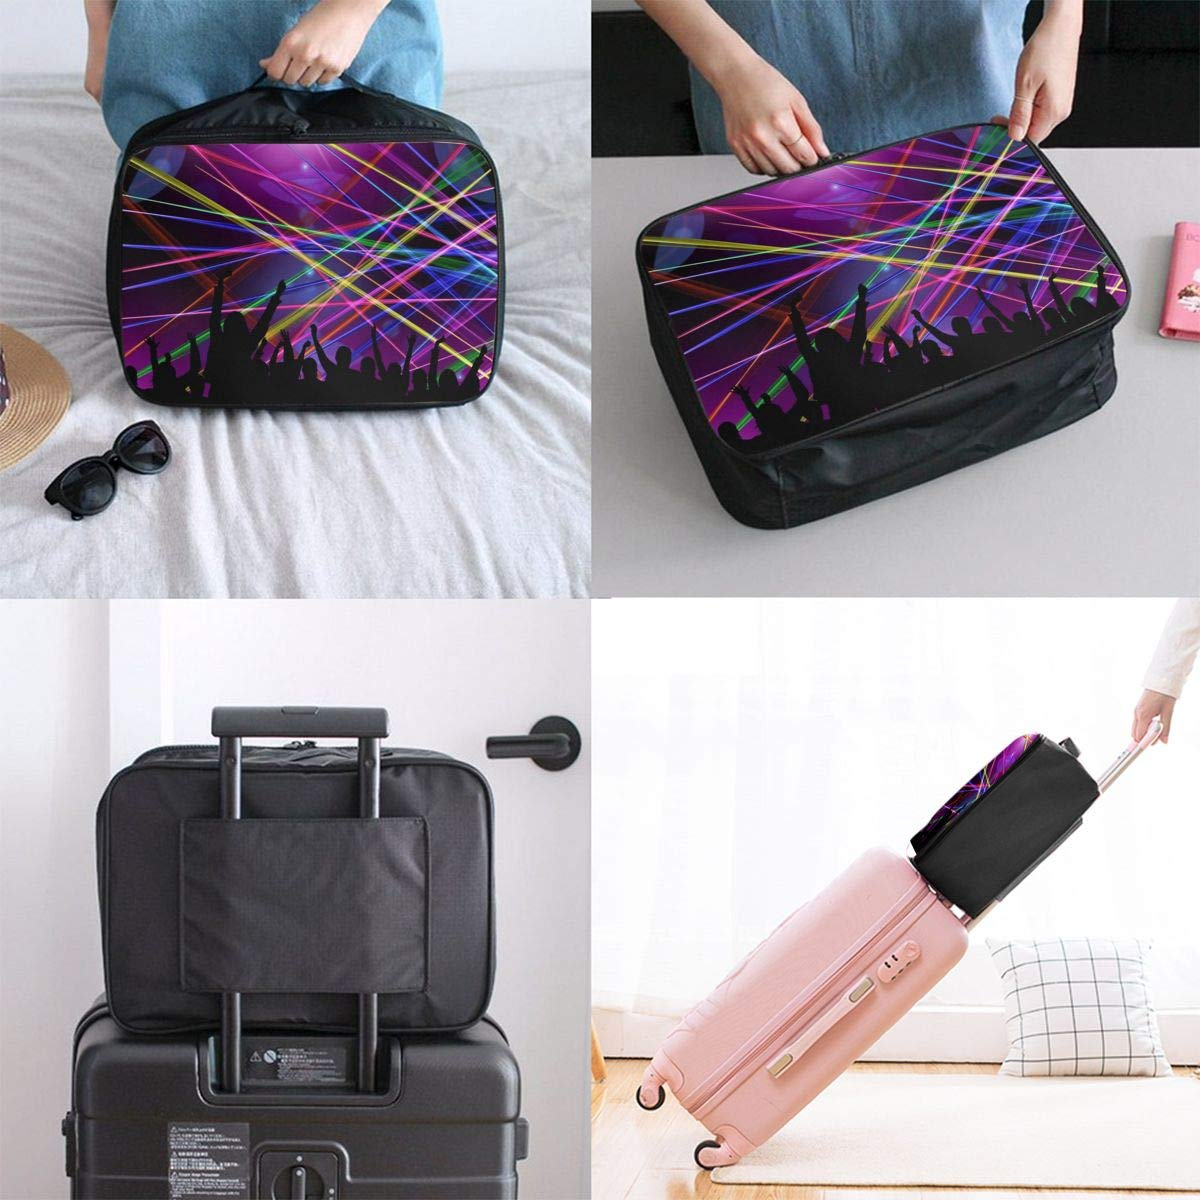 Laser Light Dance Celebration Travel Lightweight Waterproof Foldable Storage Carry Luggage Large Capacity Portable Luggage Bag Duffel Bag